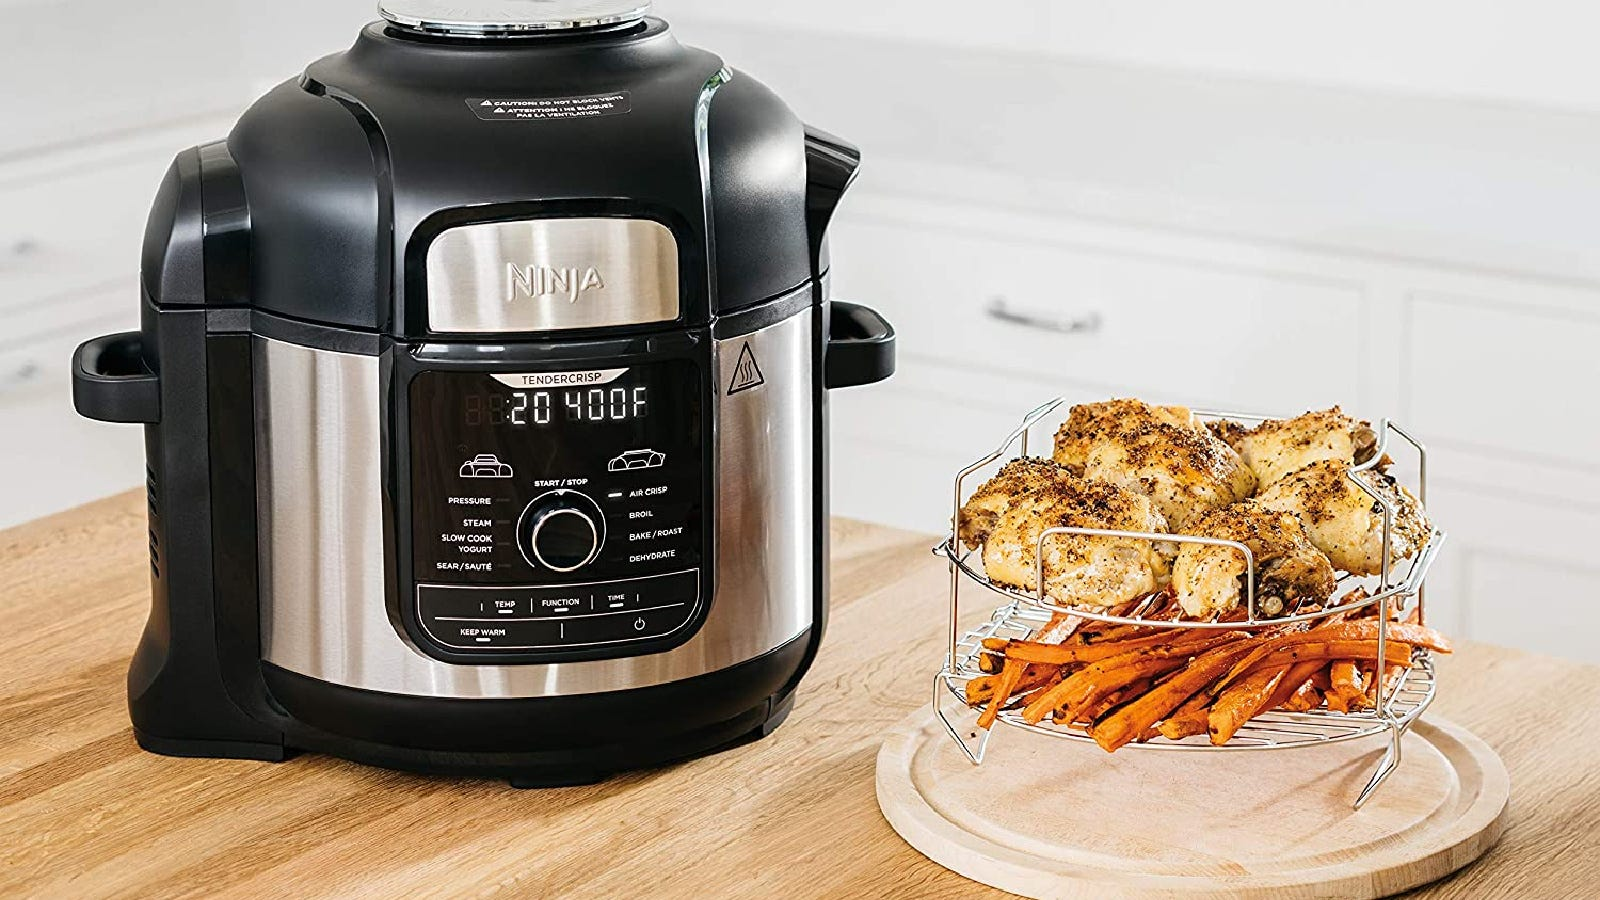 A Ninja Instant Pot with freshly cooked chicken and carrots along side of the appliance.